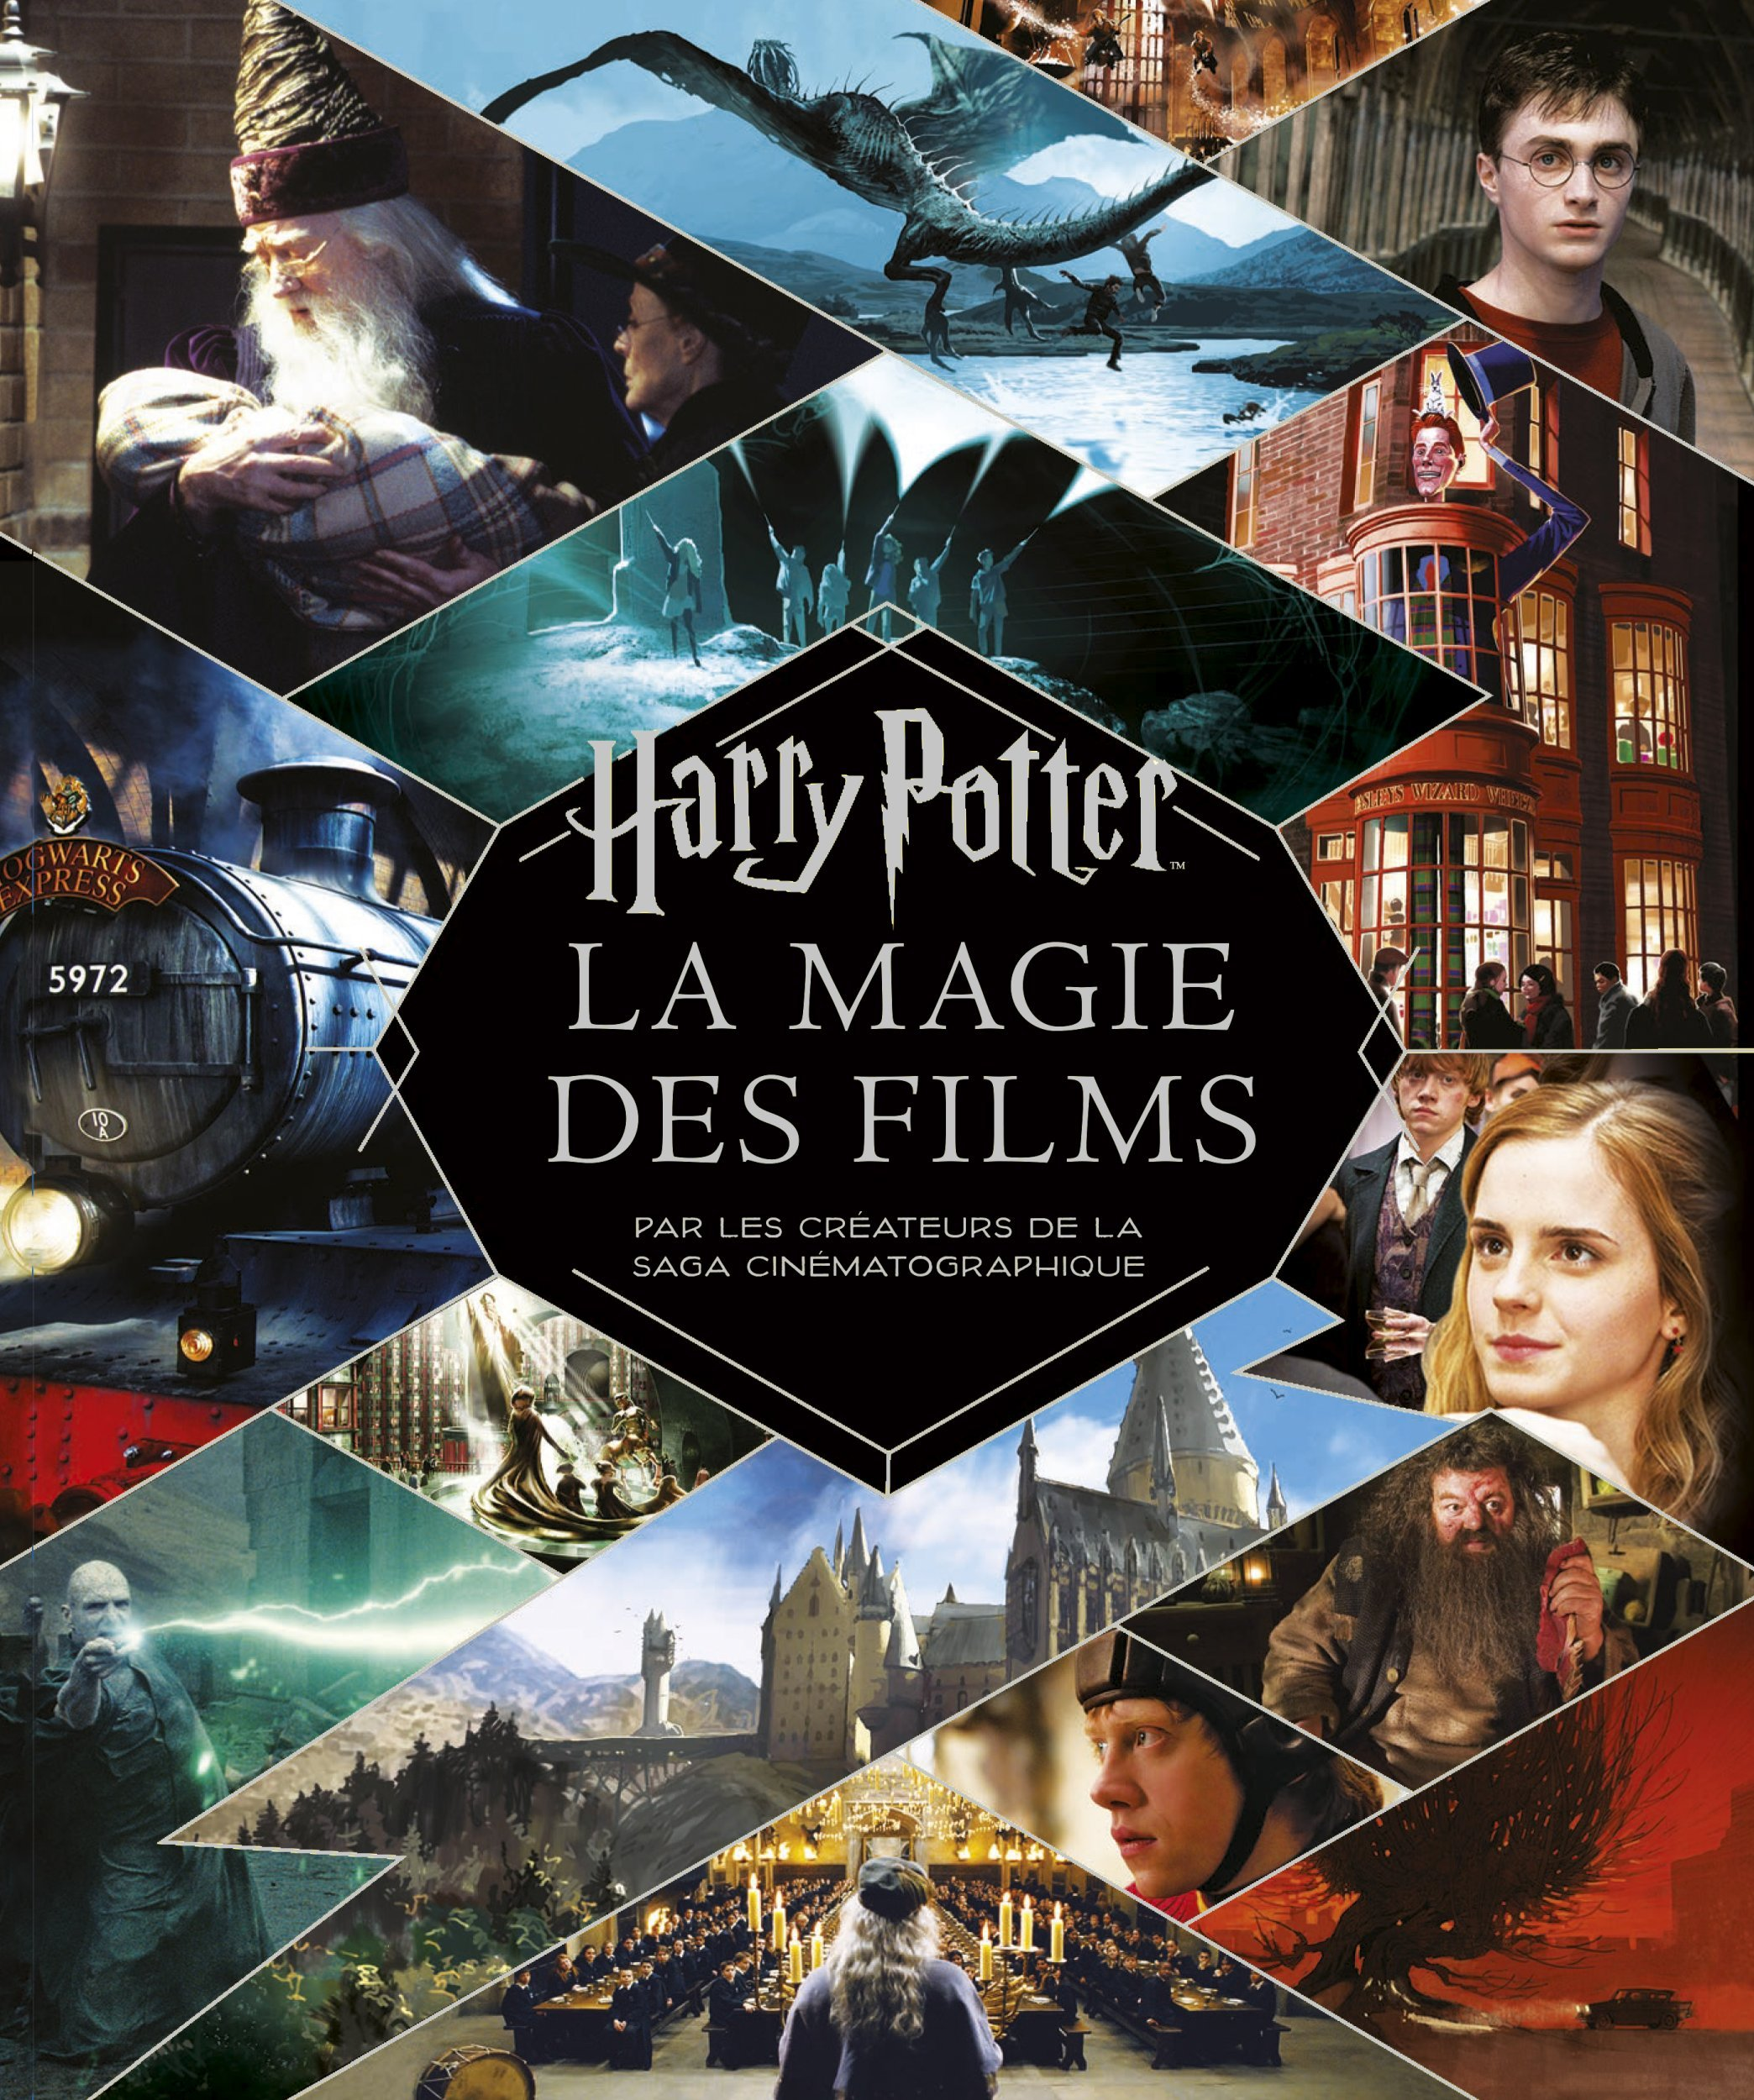 HARRY POTTER - LA MAGIE DES FILMS (NOUVELLE EDITION)